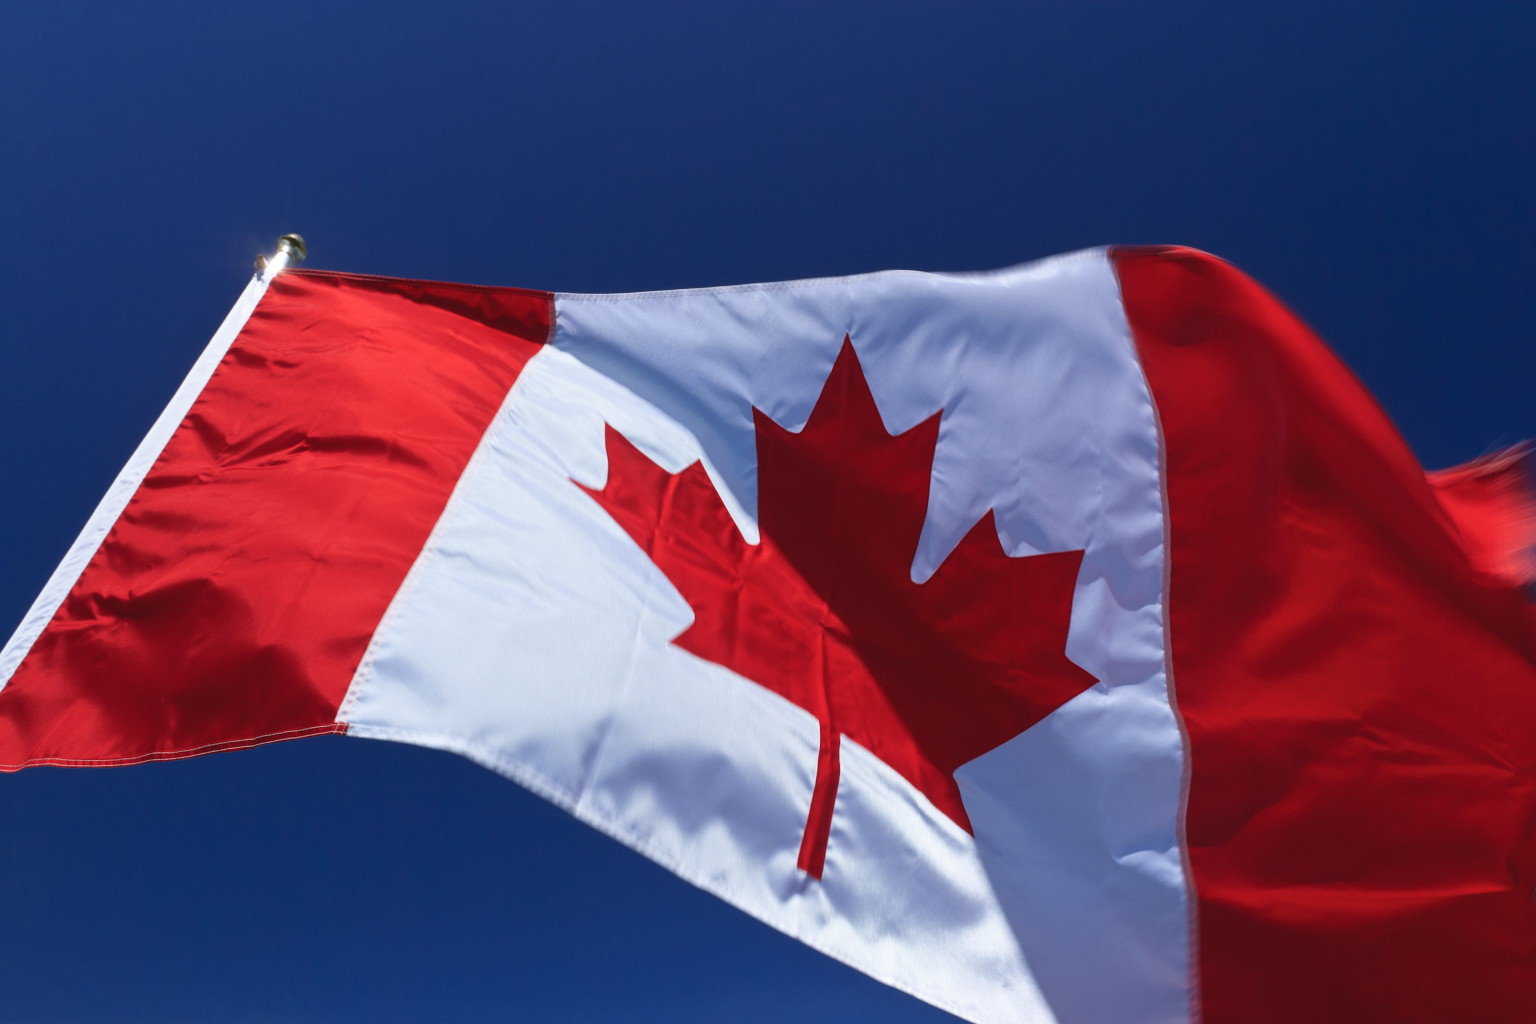 Canadian flag flapping in wind, Vancouver